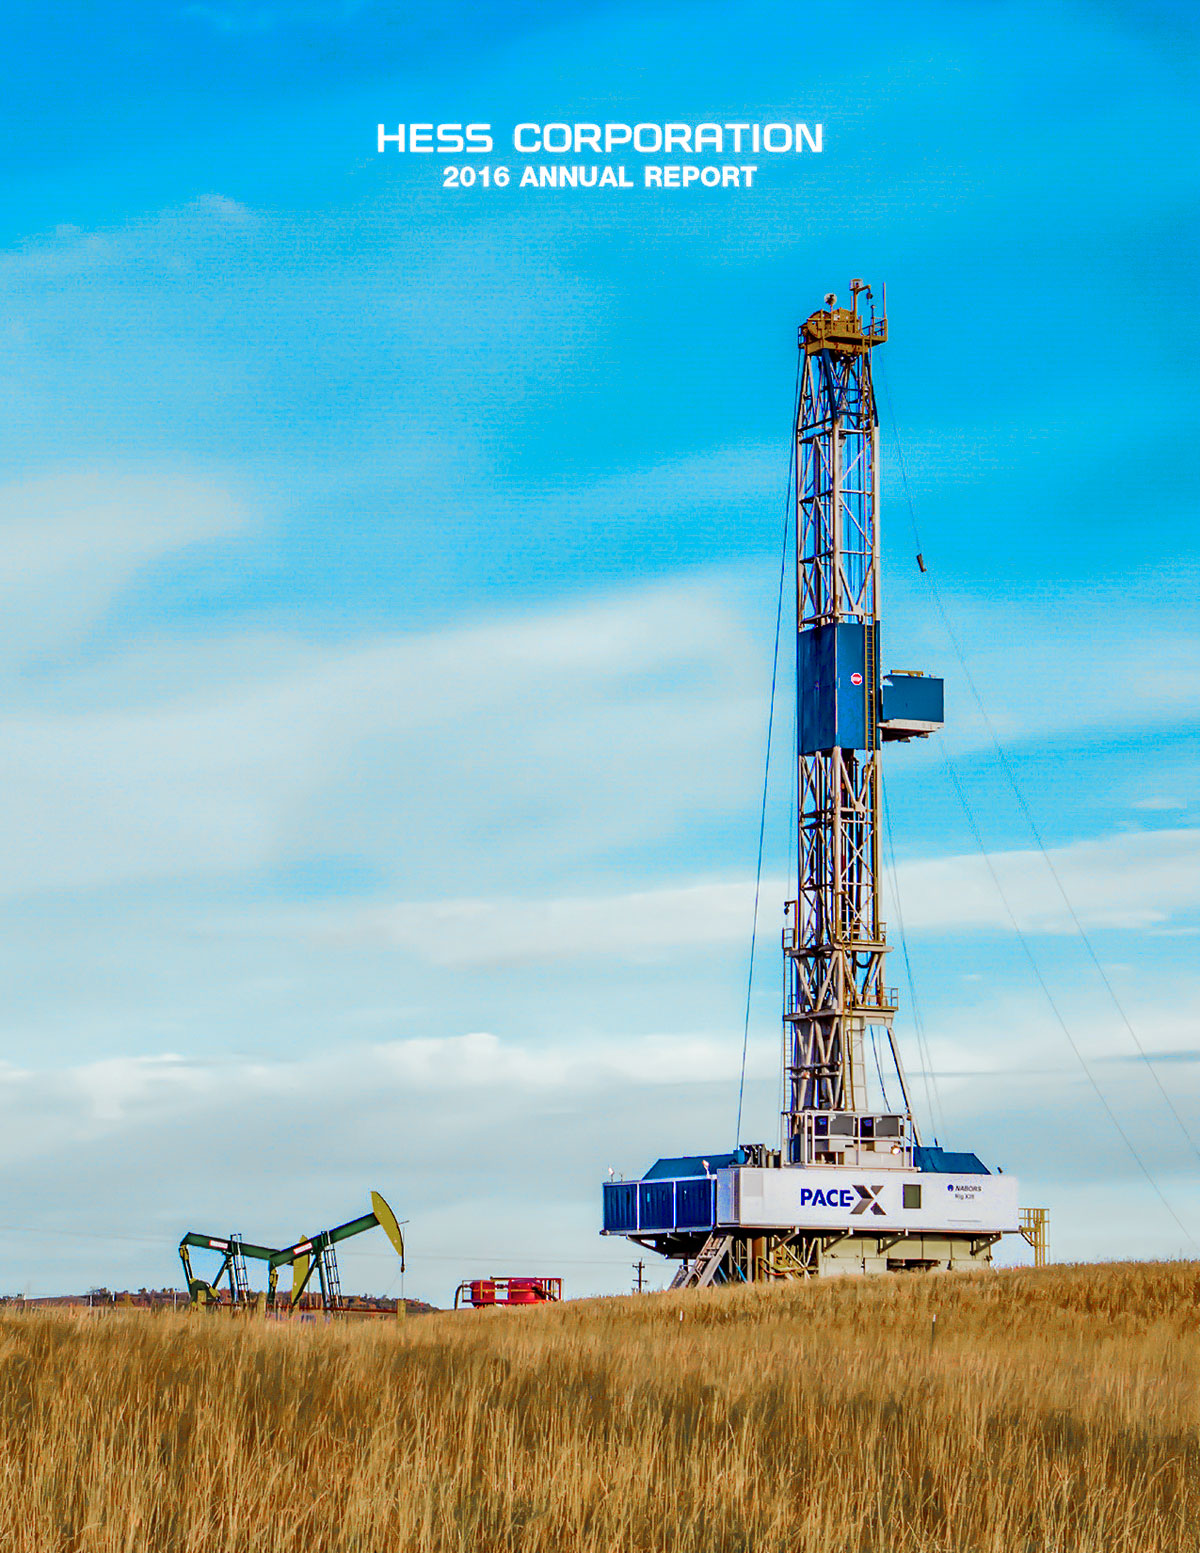 HESS Corporation 2016 annual report cover was photographed in North Dakota photo by Marc Morrison.